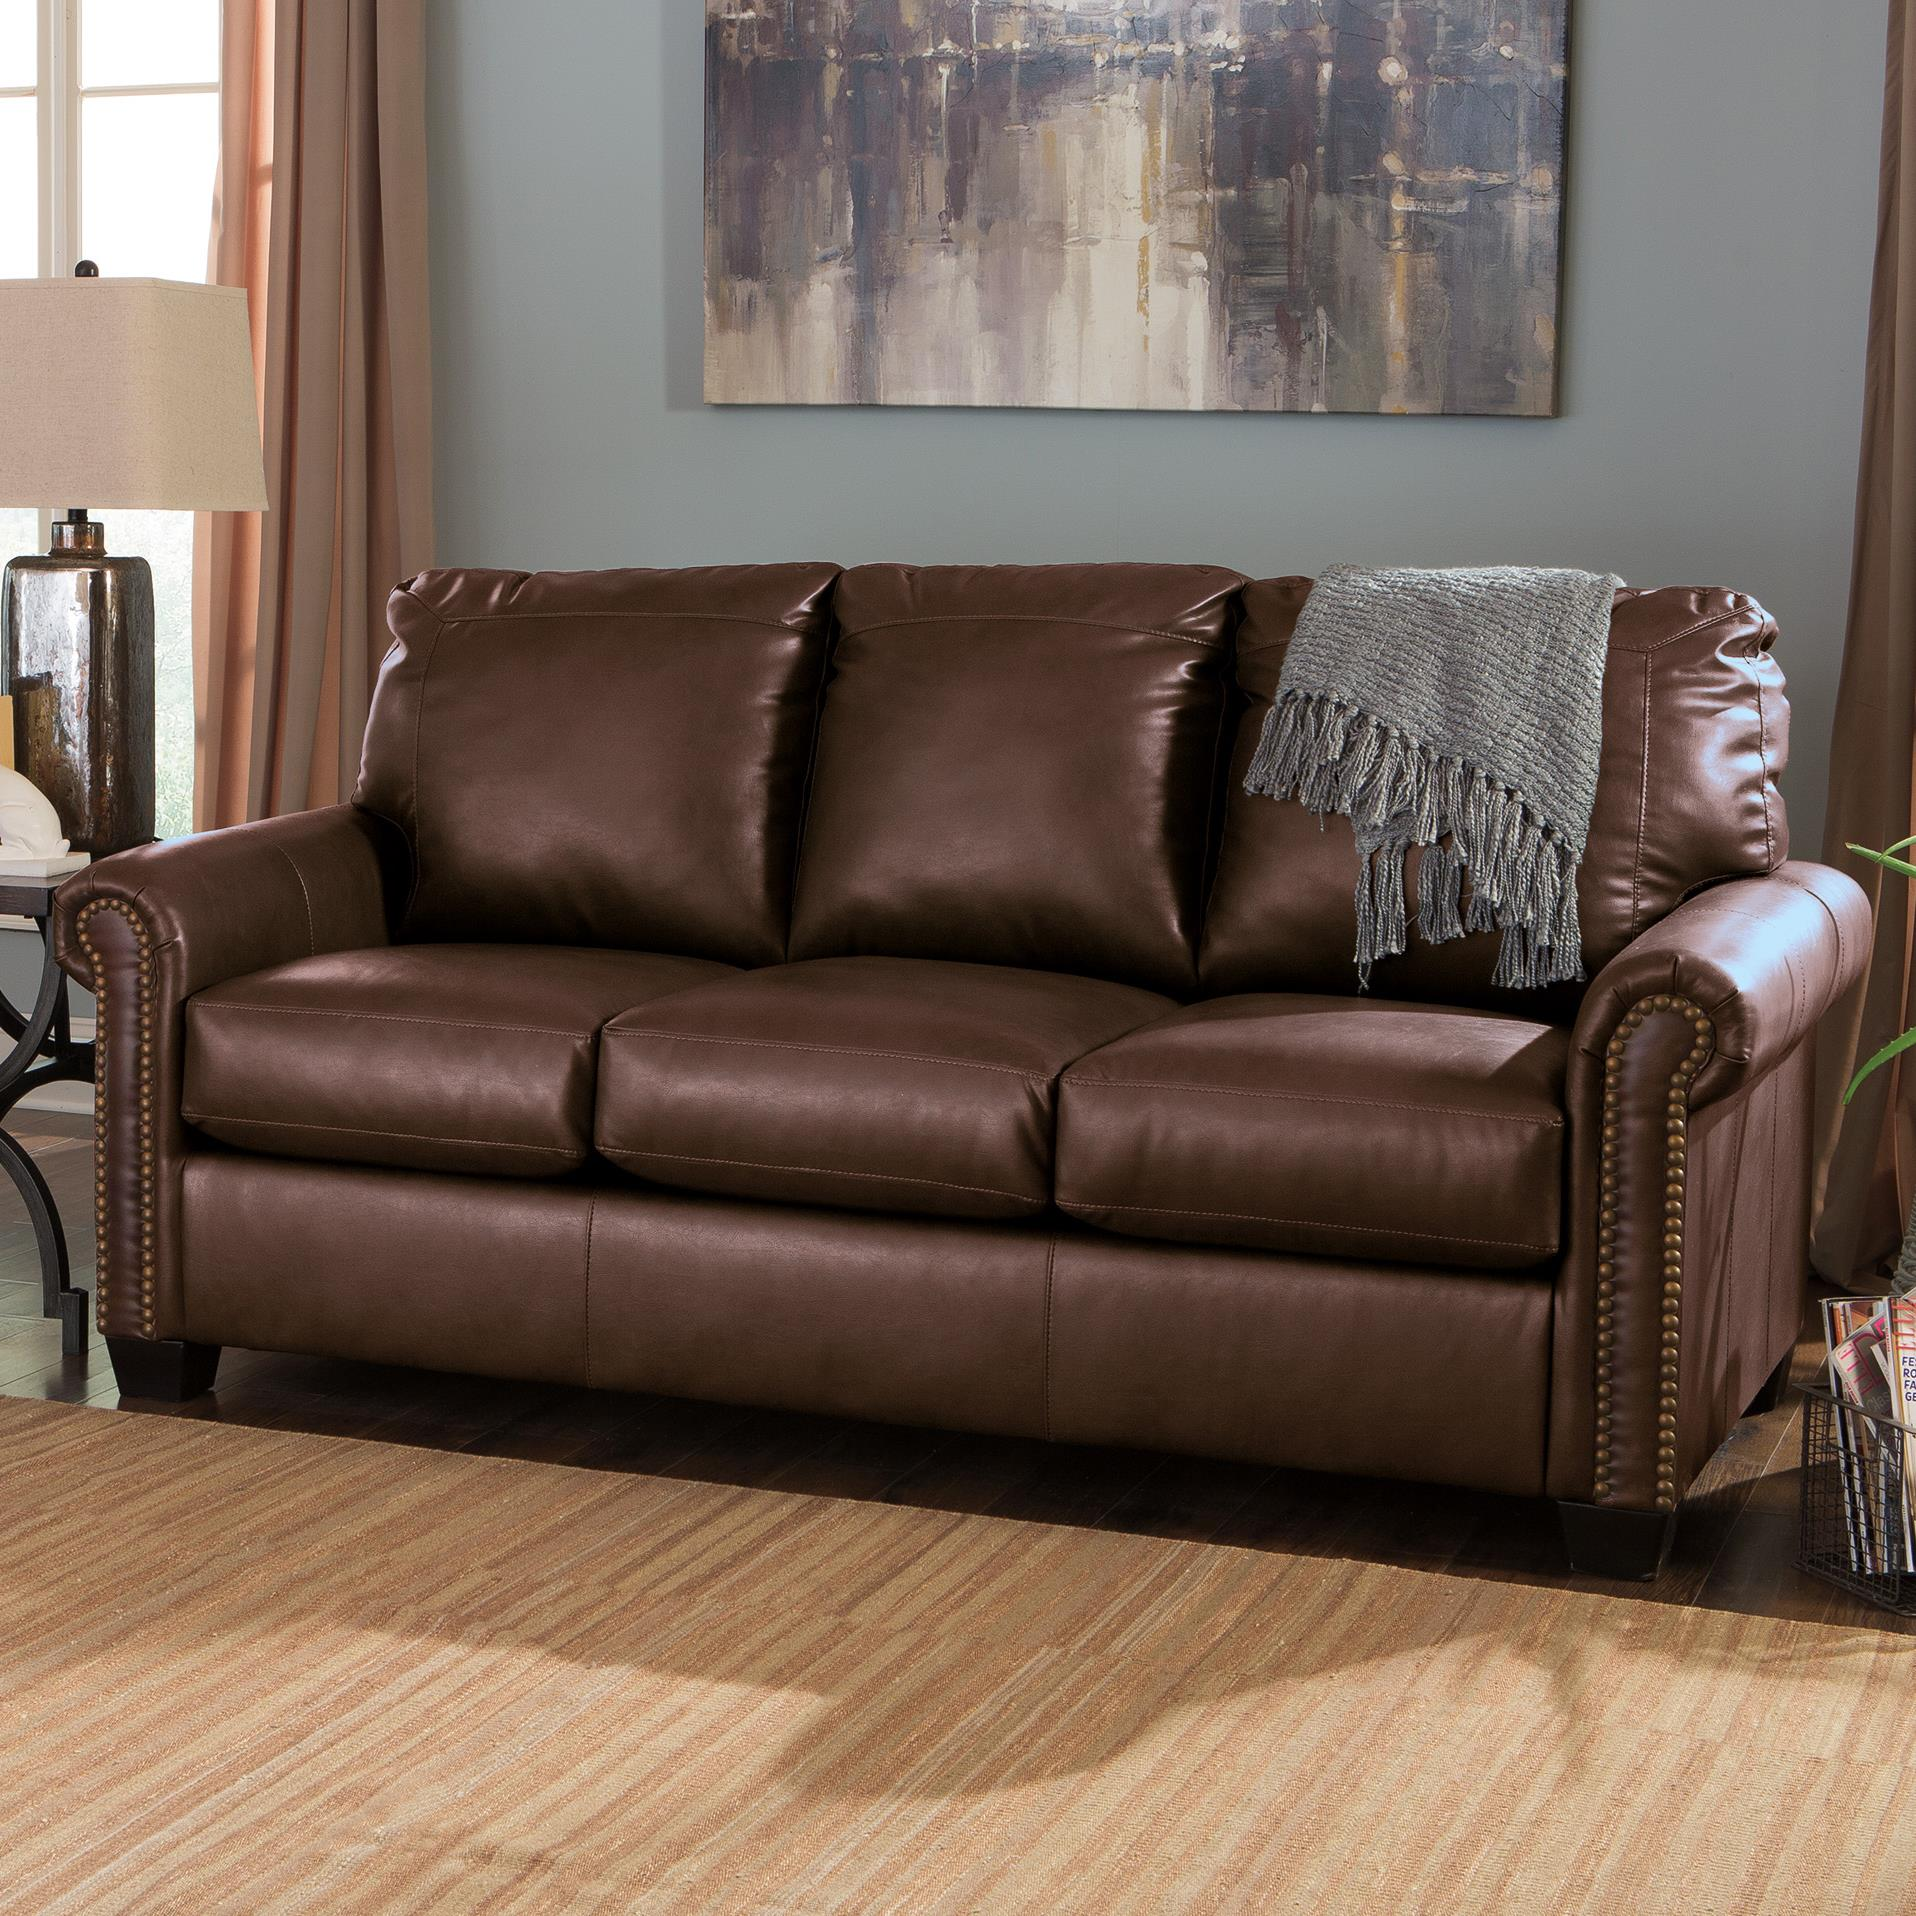 Transitional Bonded Leather Match 78 Full Sofa Sleeper With  ~ Sofa Sleepers With Memory Foam Mattress